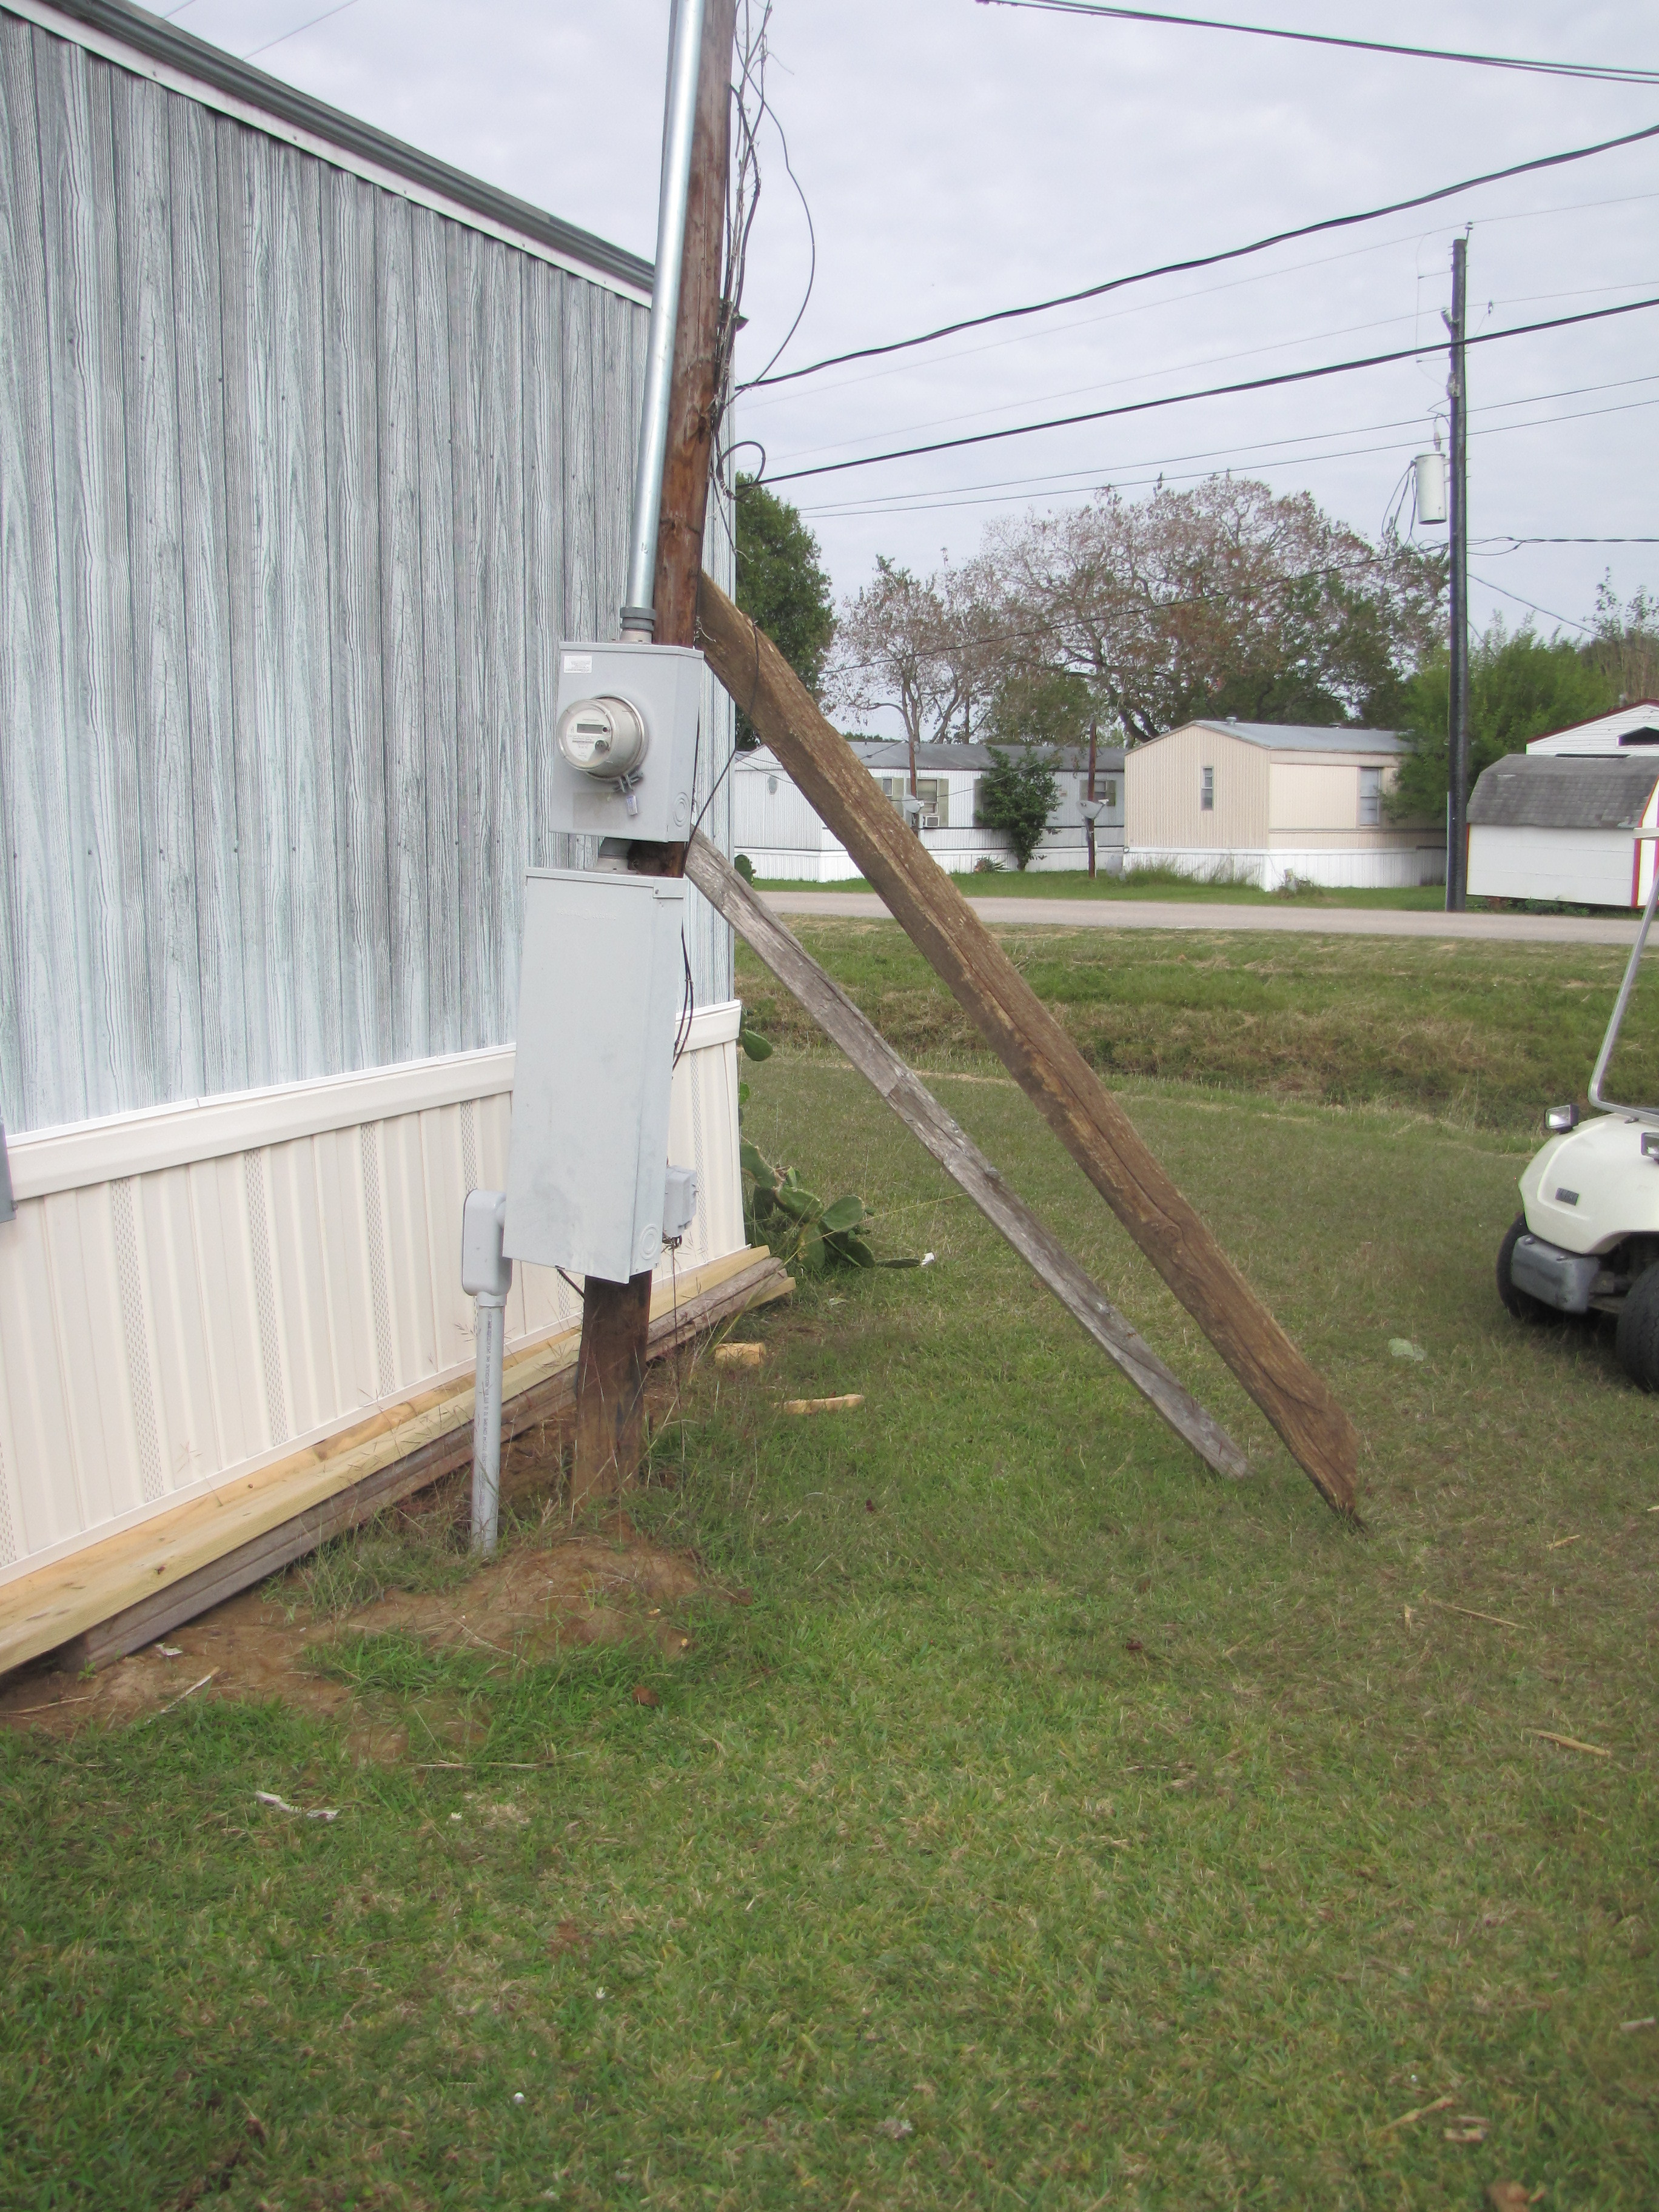 defe55bedb18be580c28dc29cf012abecef87b48 Electric Pole Specifications For Mobile Home In Tennessee on